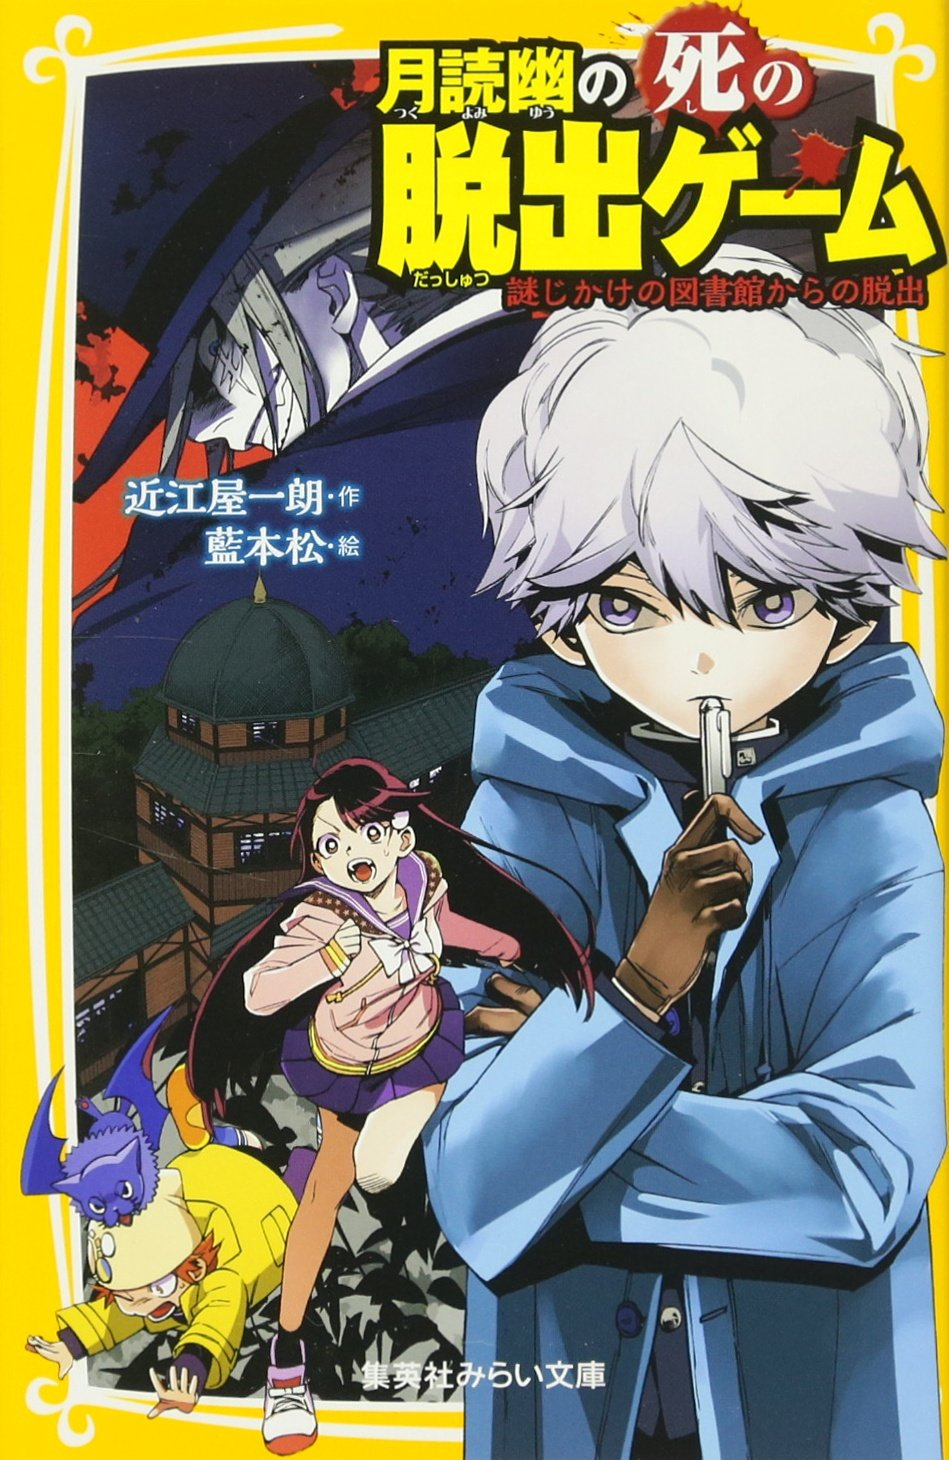 Read Online Escape game of death-read Yu Yu Hakusho mystery only escape from the library's (SHUEISHA Mirai paperback) pdf